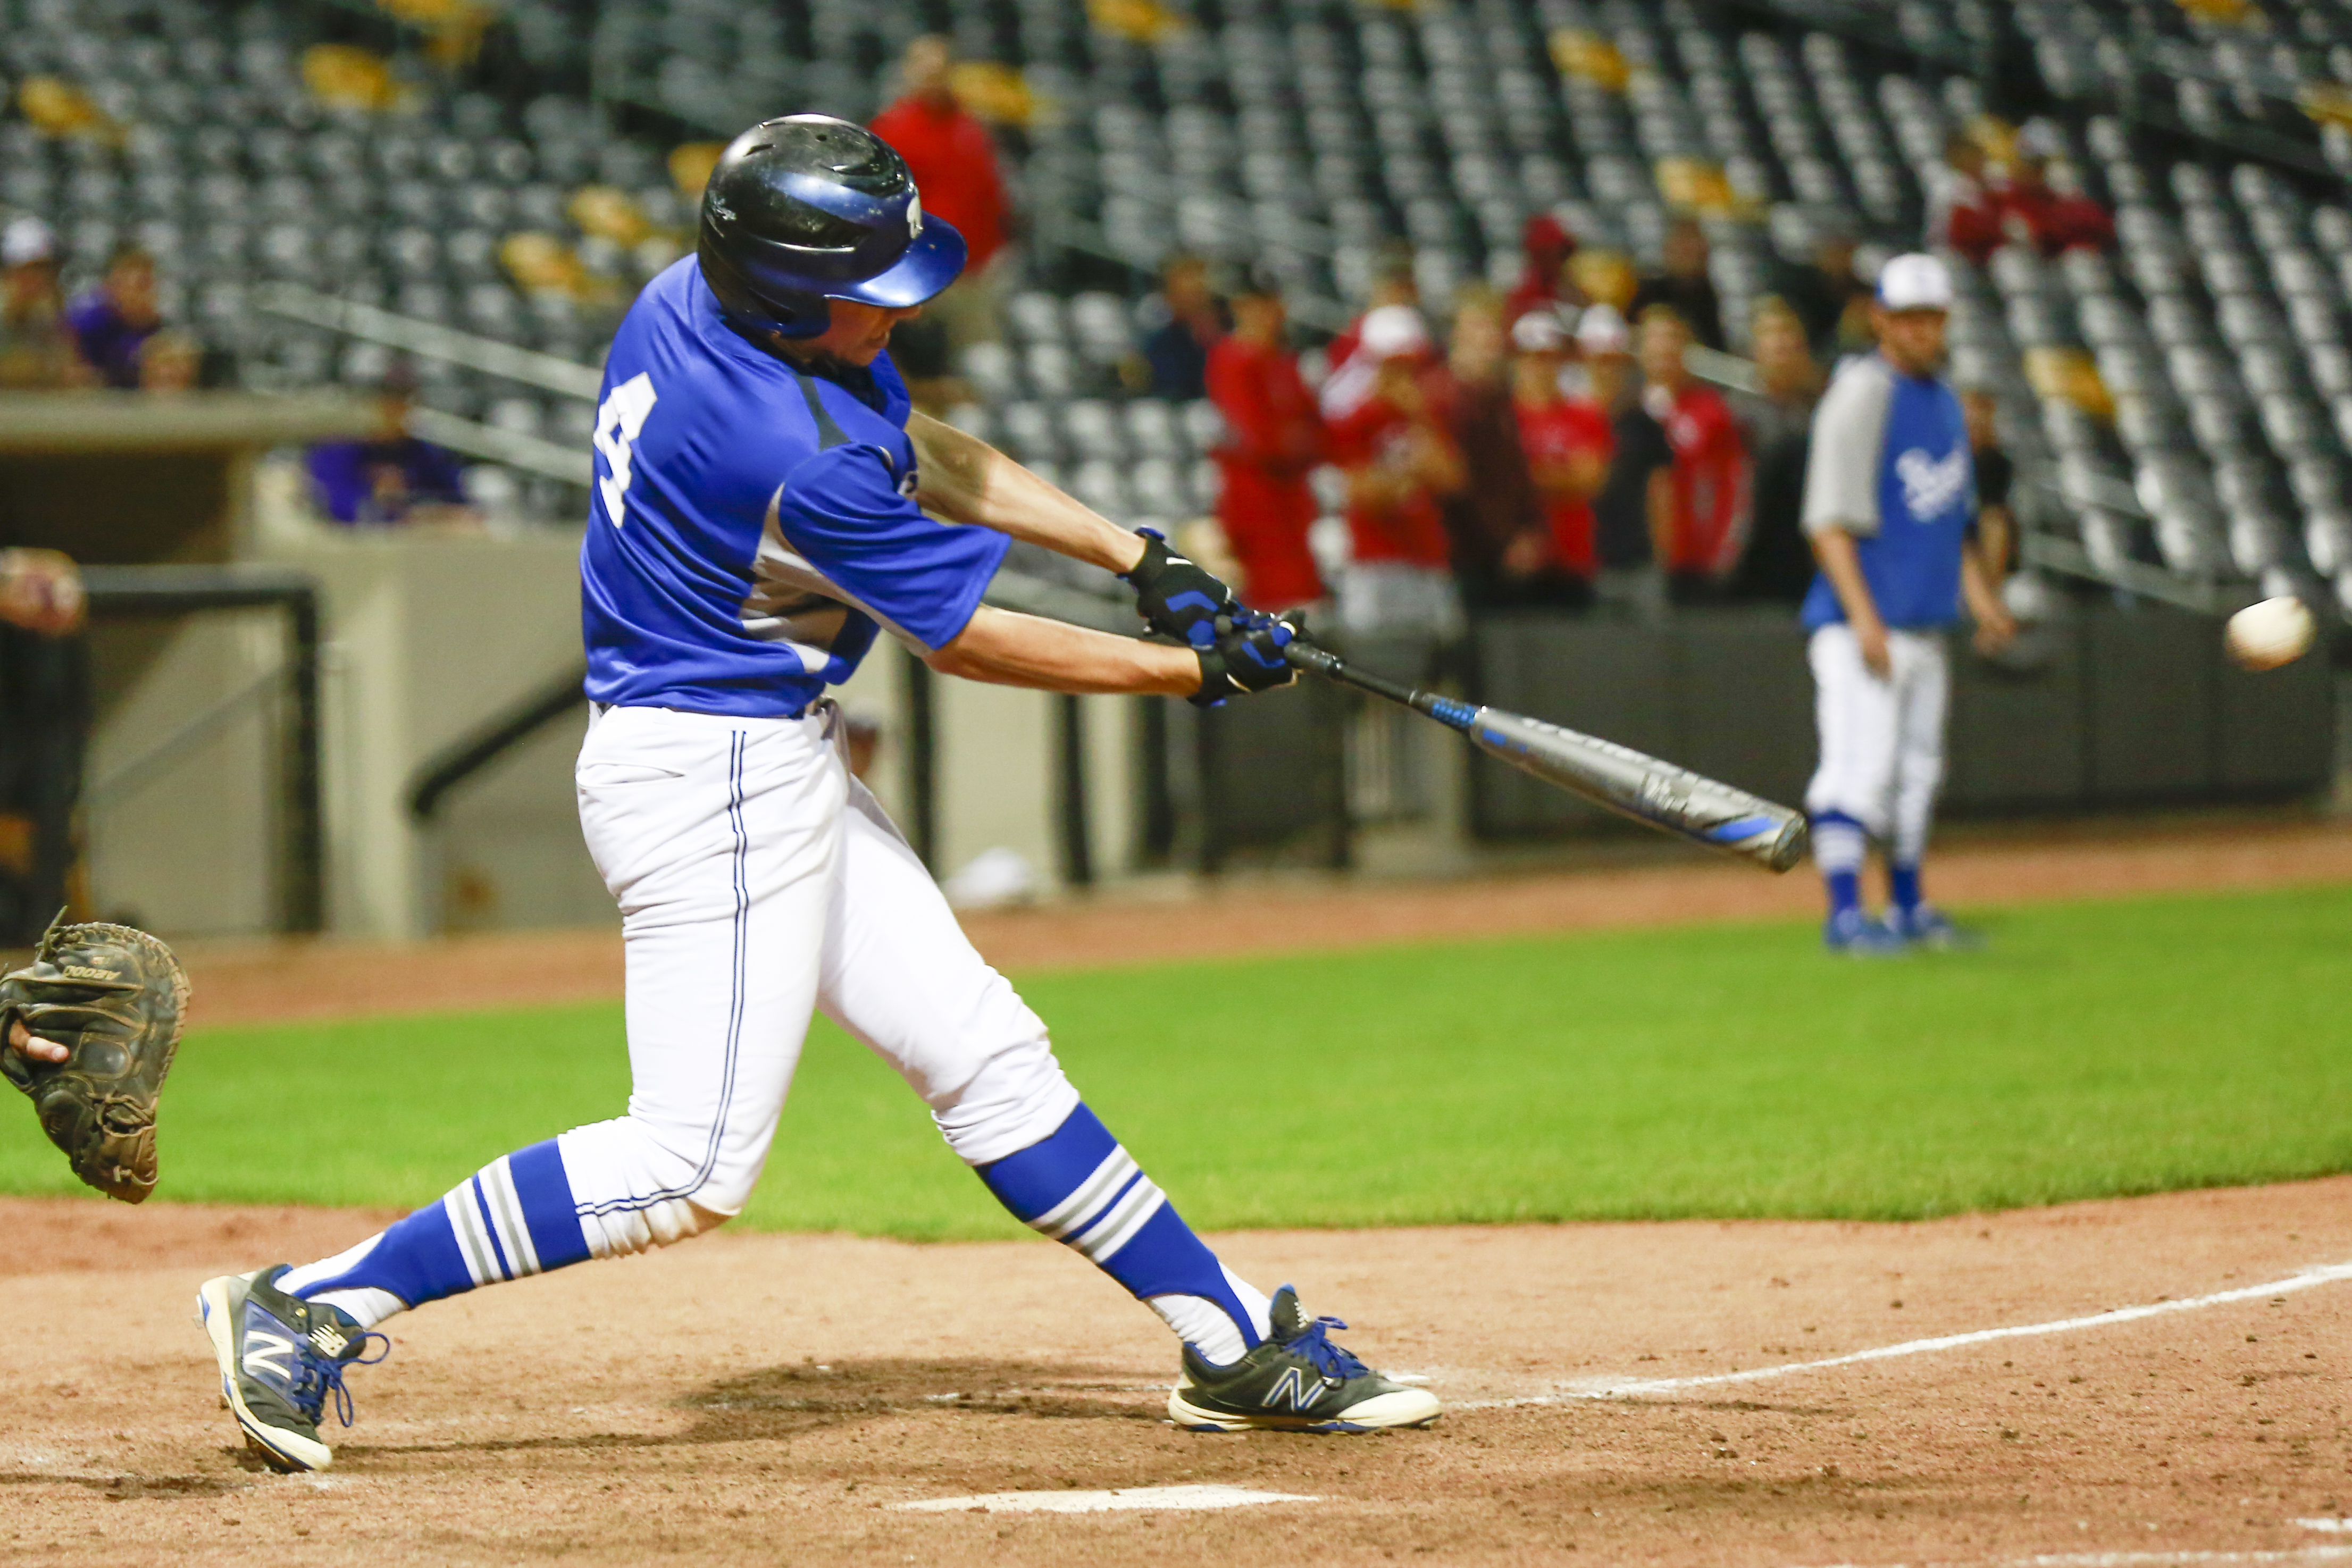 Woodbury junior Nolan Glunz (4) comes through with the game-winning hit against Stillwater in the Class 4A, Section 4 championship game Tuesday night at CHS Field in St. Paul. The Royals won 3-2 in 10 innings. Photo by Chris Juhn